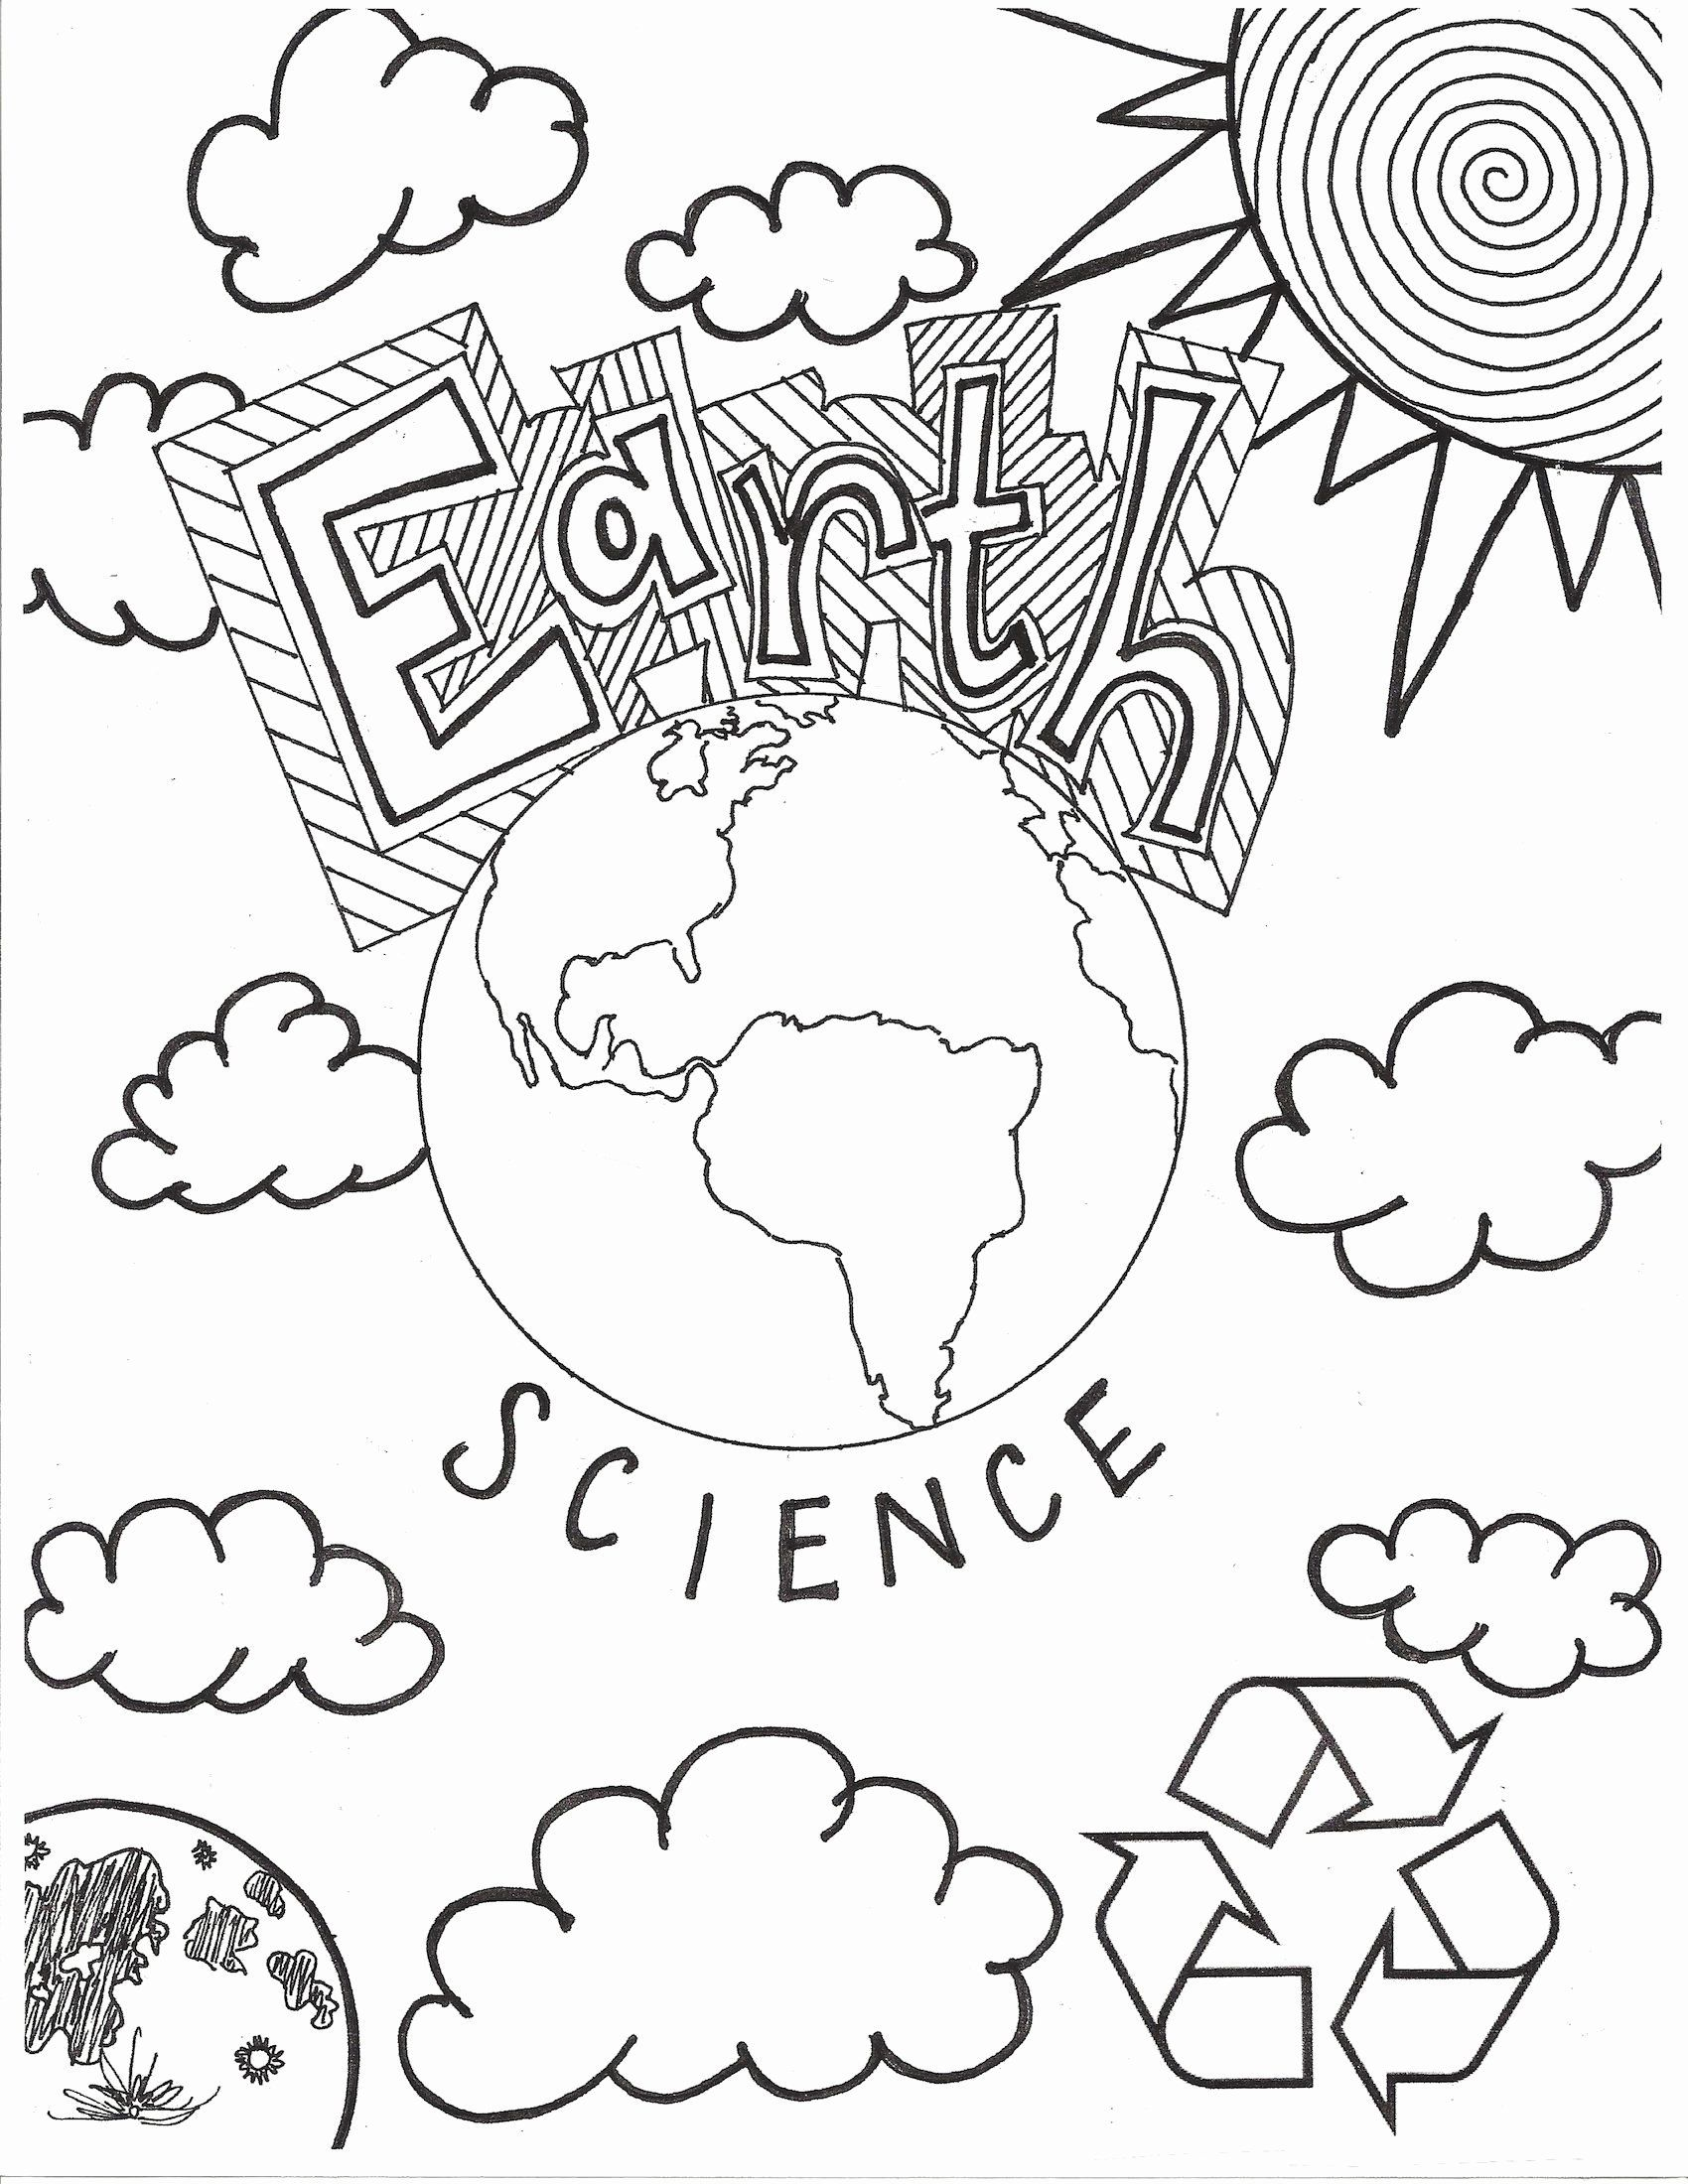 Physical Science Coloring Book Beautiful School Subject Coloring